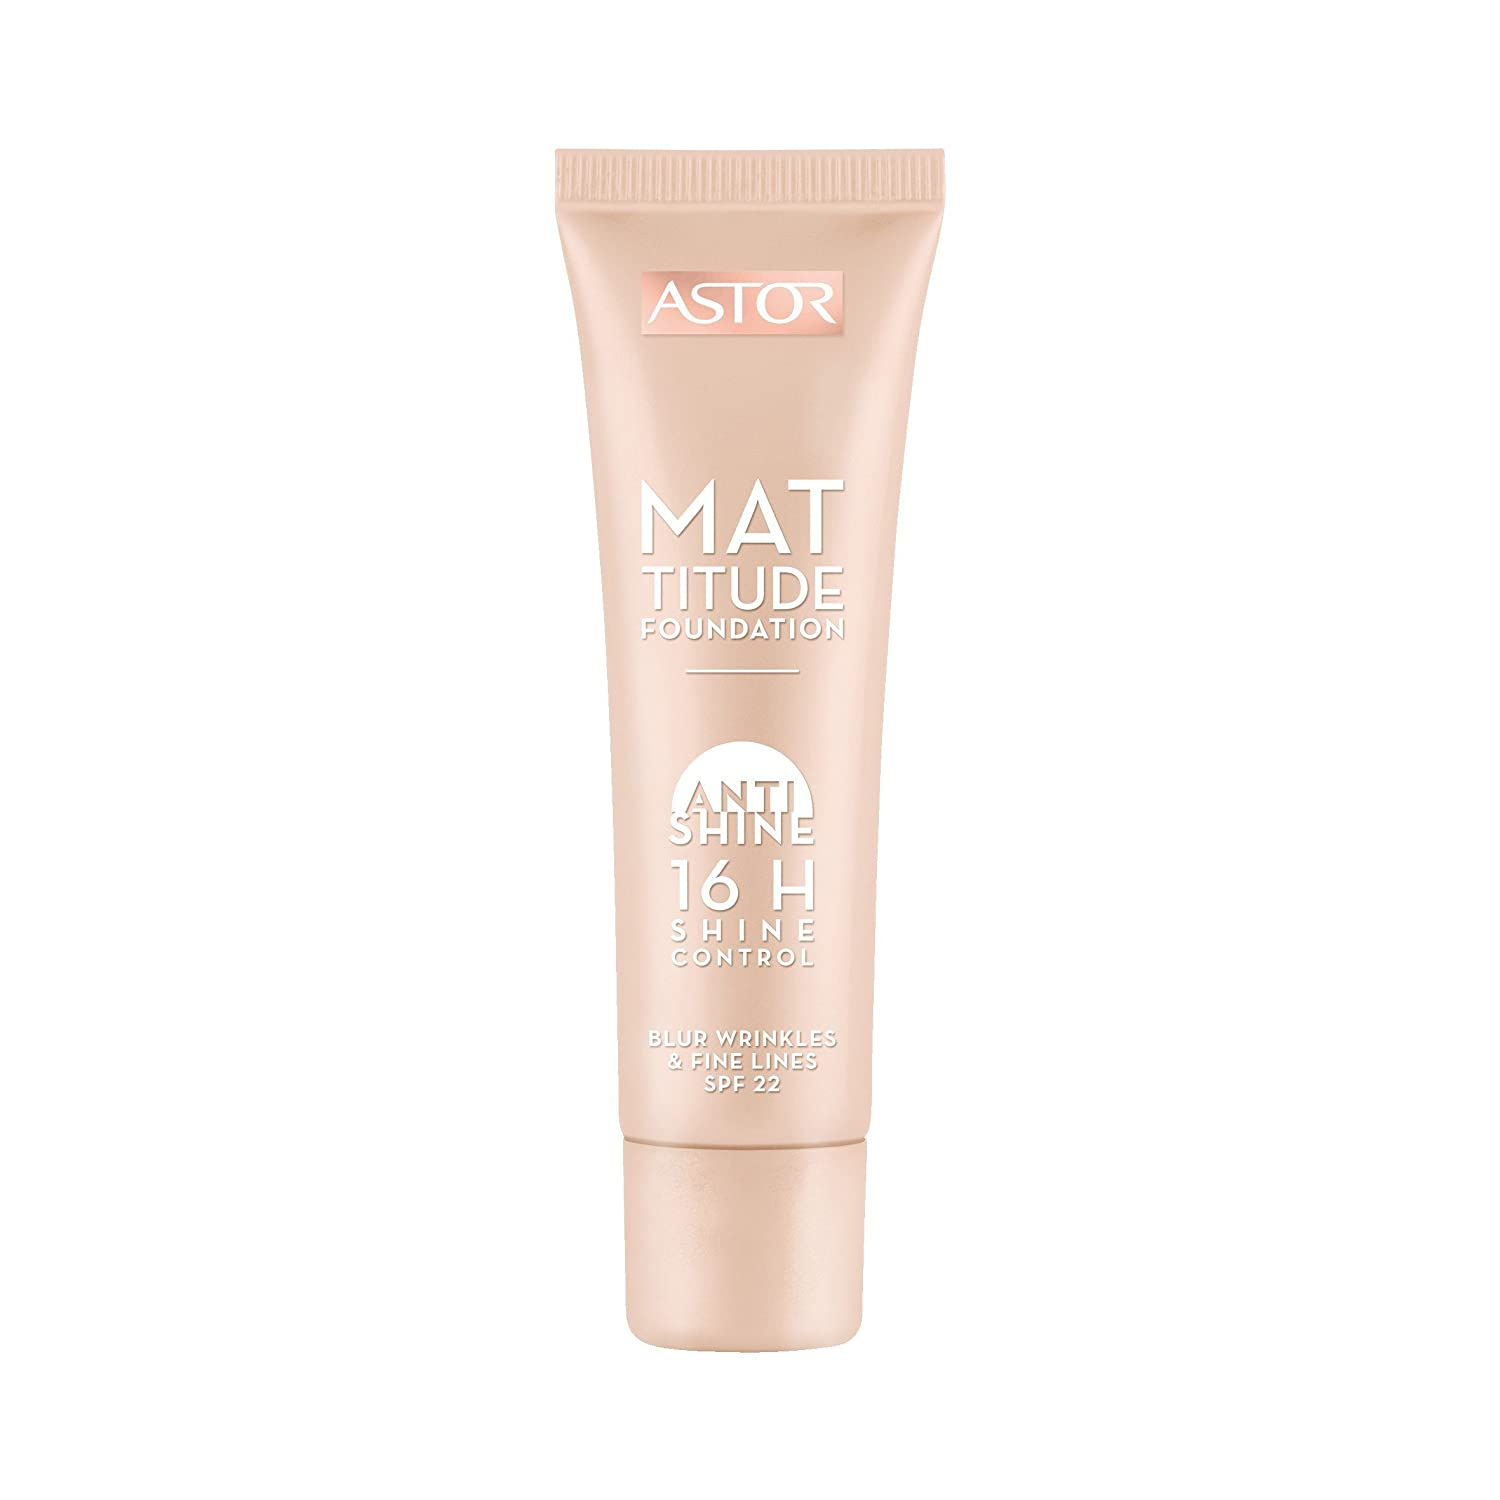 Astor Mattitude Foundation, Farbe 400, 1er Pack (1 x 30 ml) 26005042400